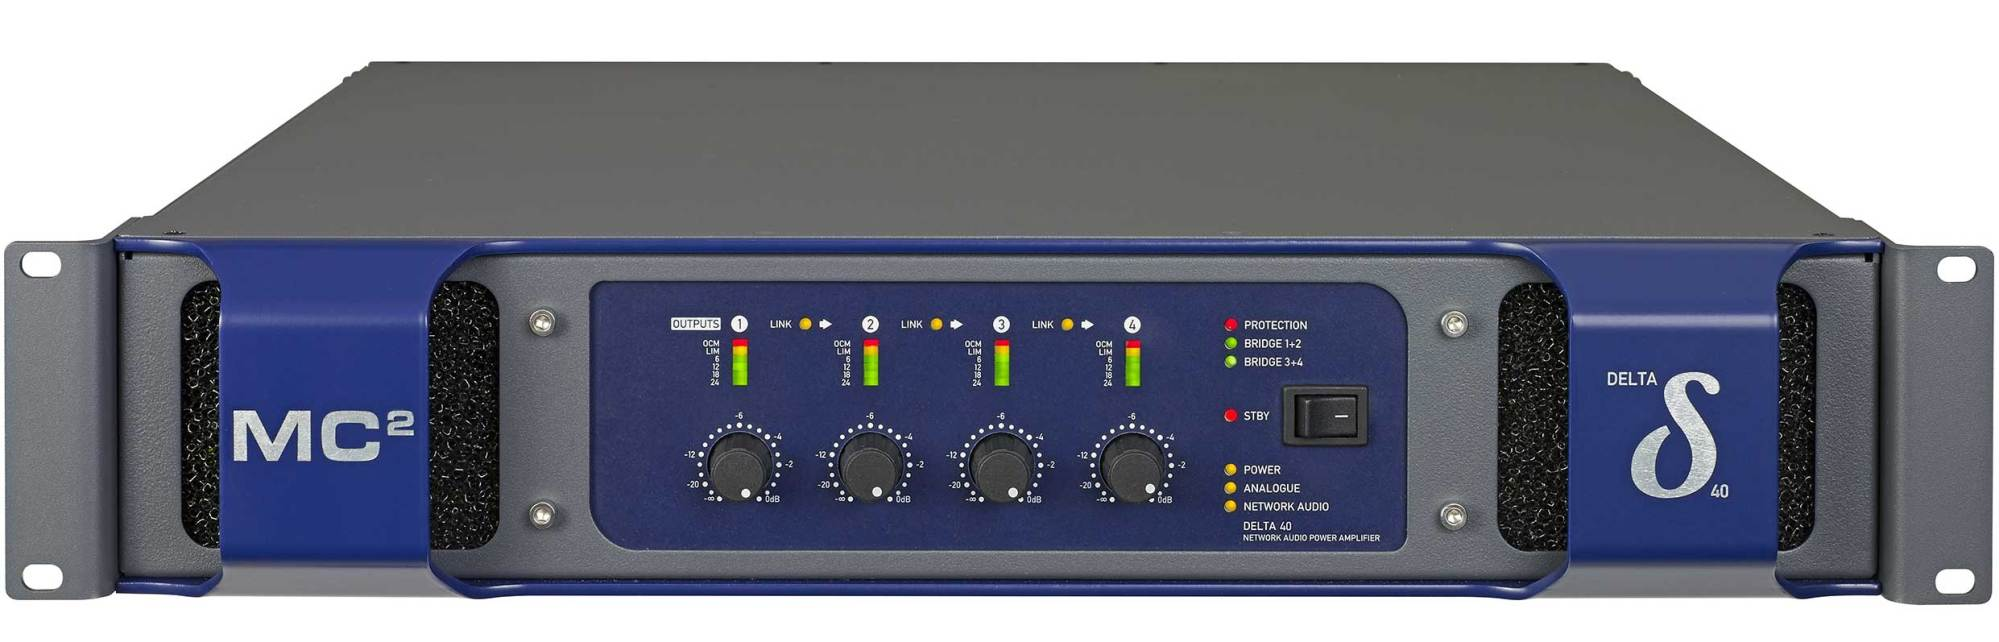 hight resolution of delta series amplifiers